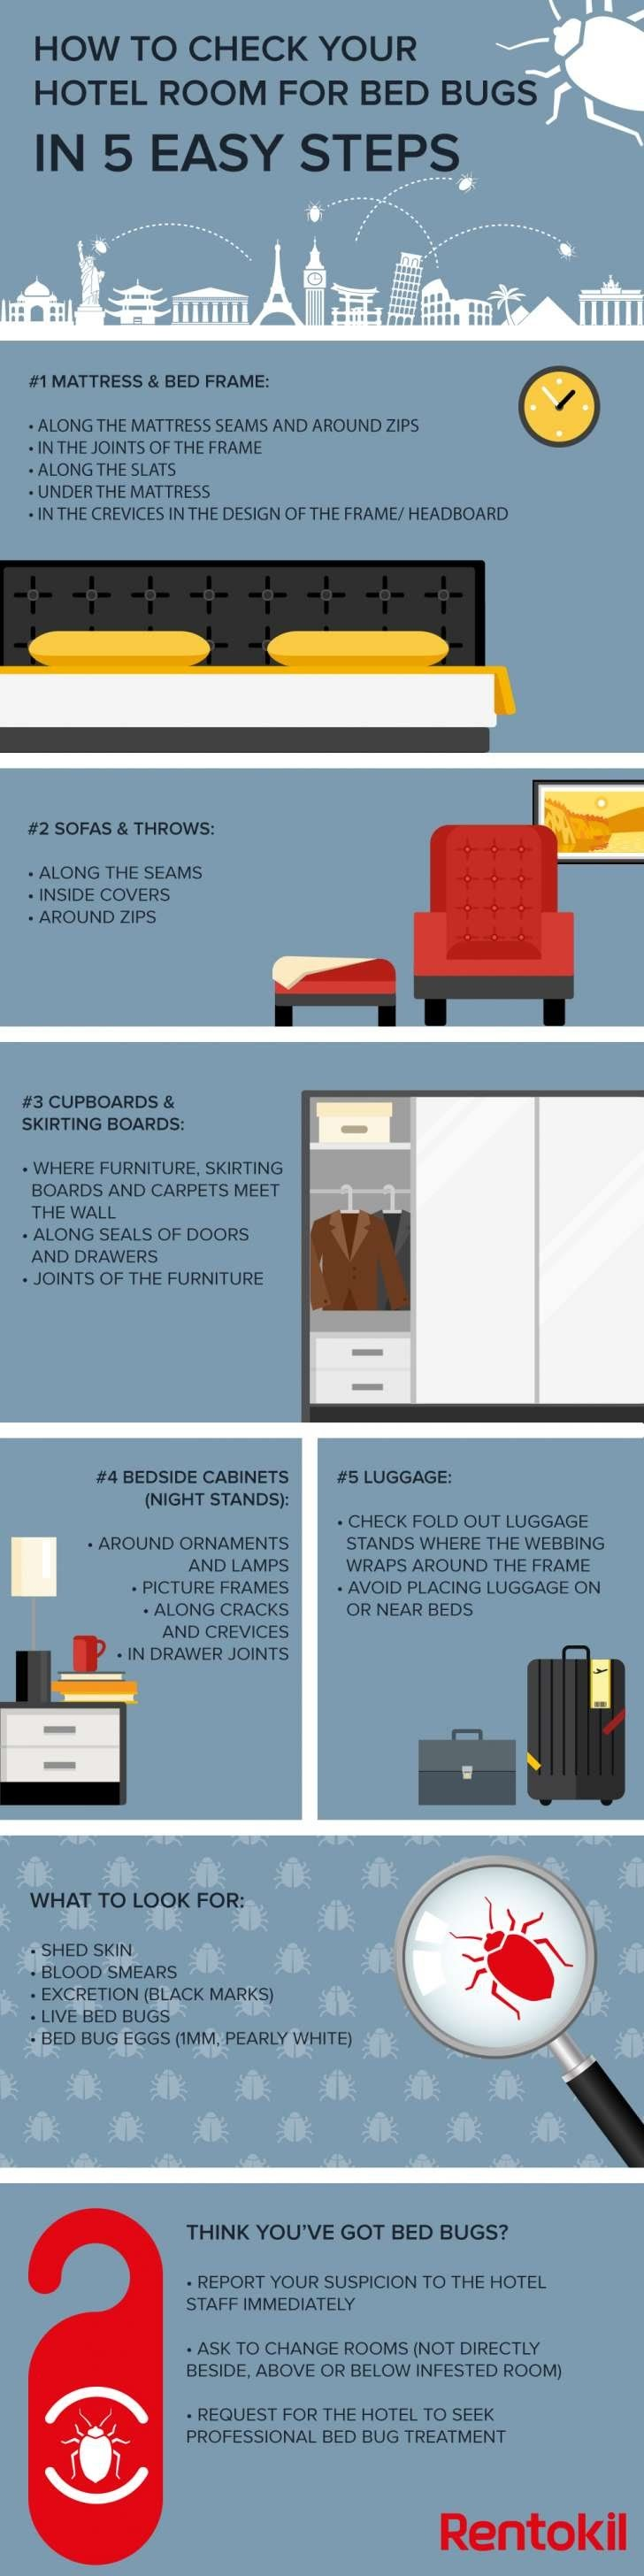 How to Check Your Hotel Room for Bed Bugs #Infographic